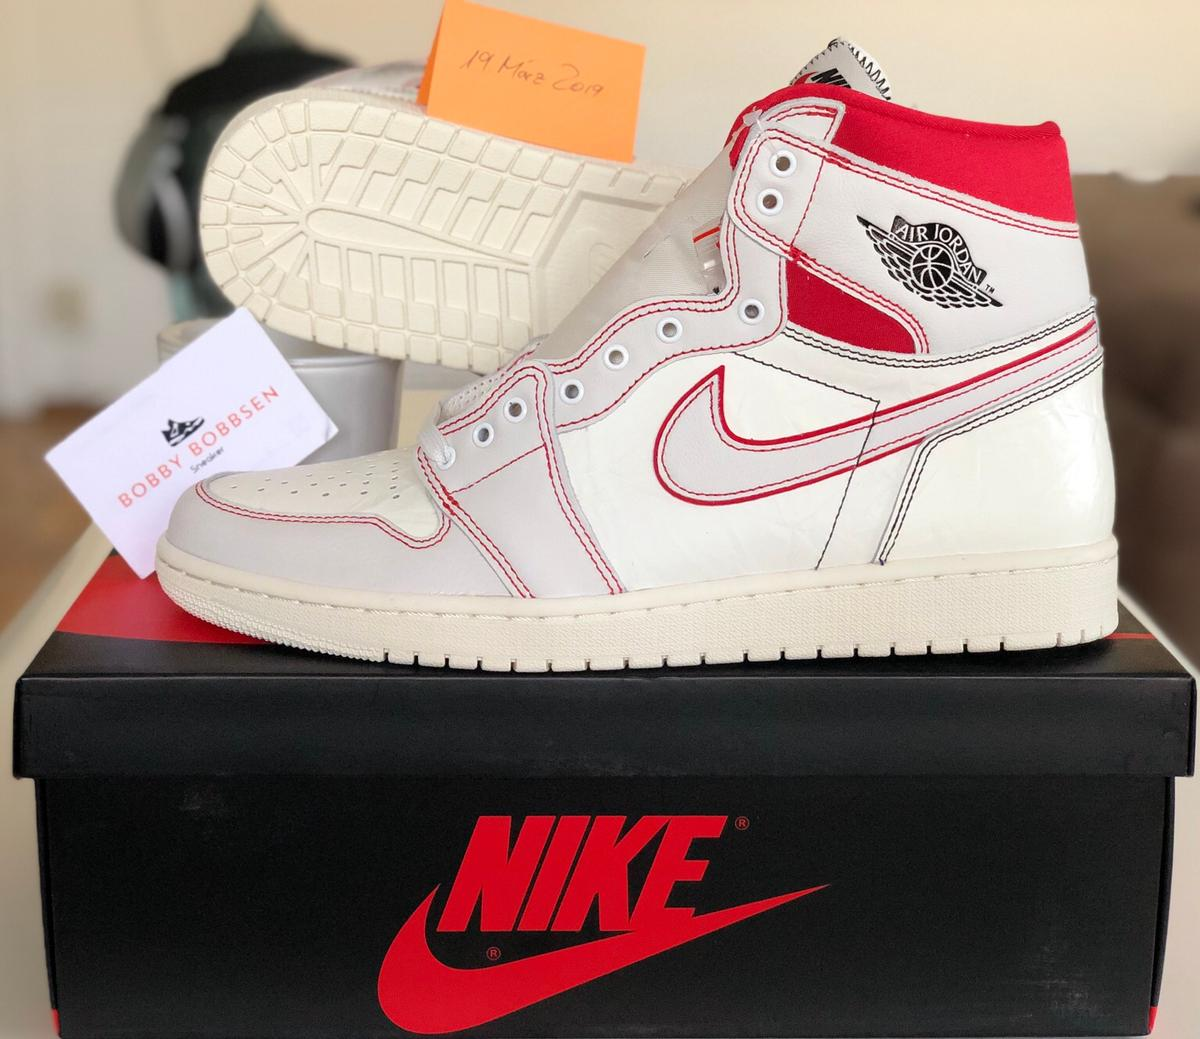 Air Force 1 Air Jordan Sneakers, Nike Schuh cardinal